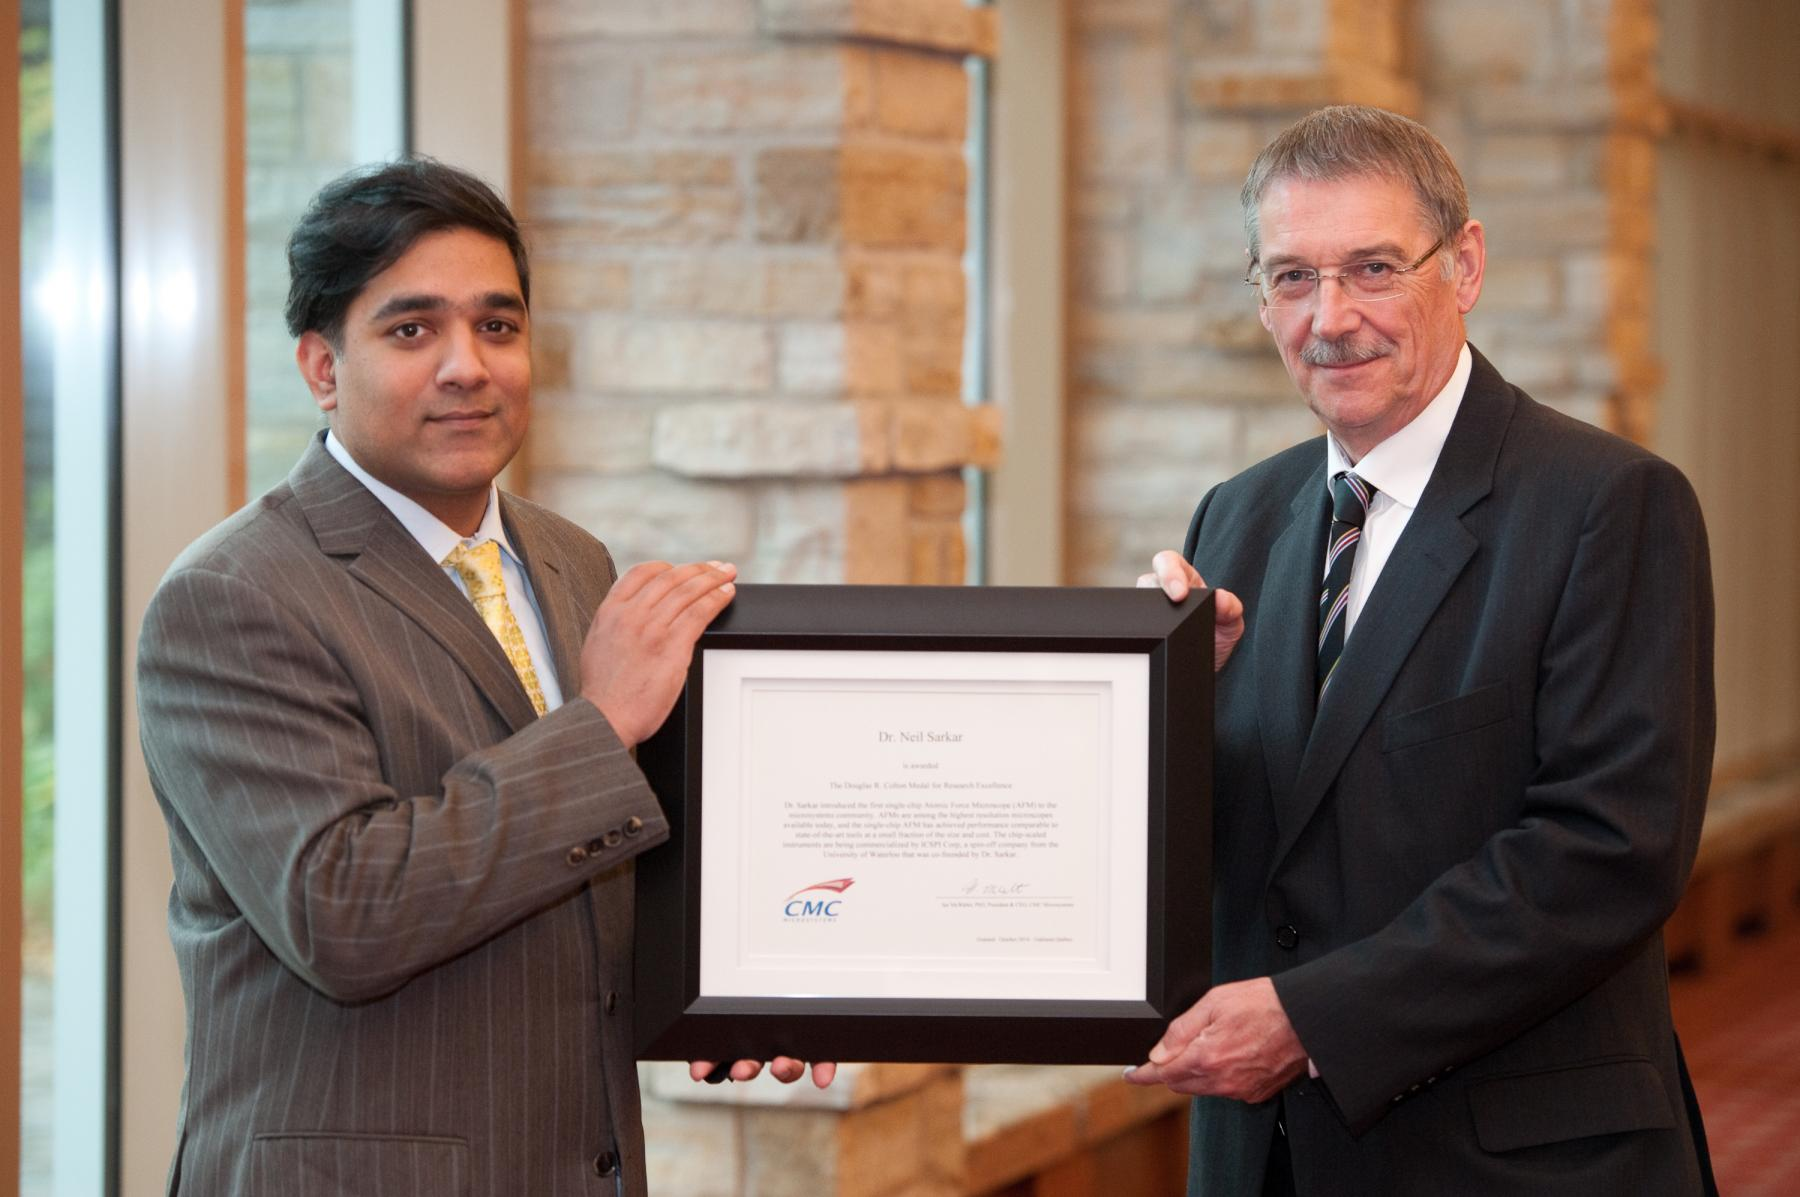 Neil Sarkar awarded the Douglas R. Colton Medal for Research Excellence from CMC Microsystems